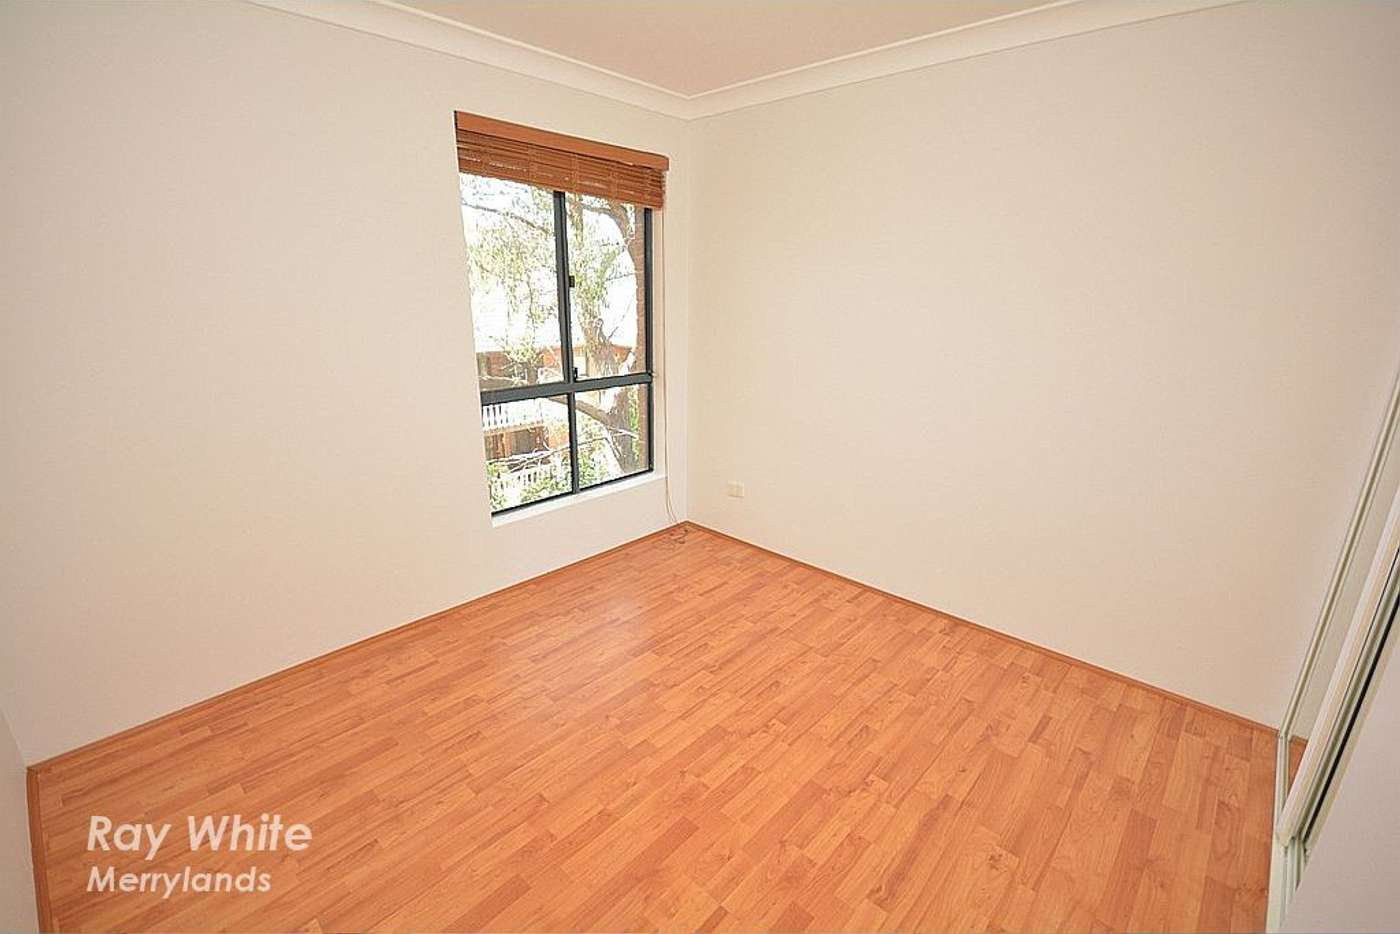 Sixth view of Homely unit listing, 6/14-16 Paton Street, Merrylands NSW 2160